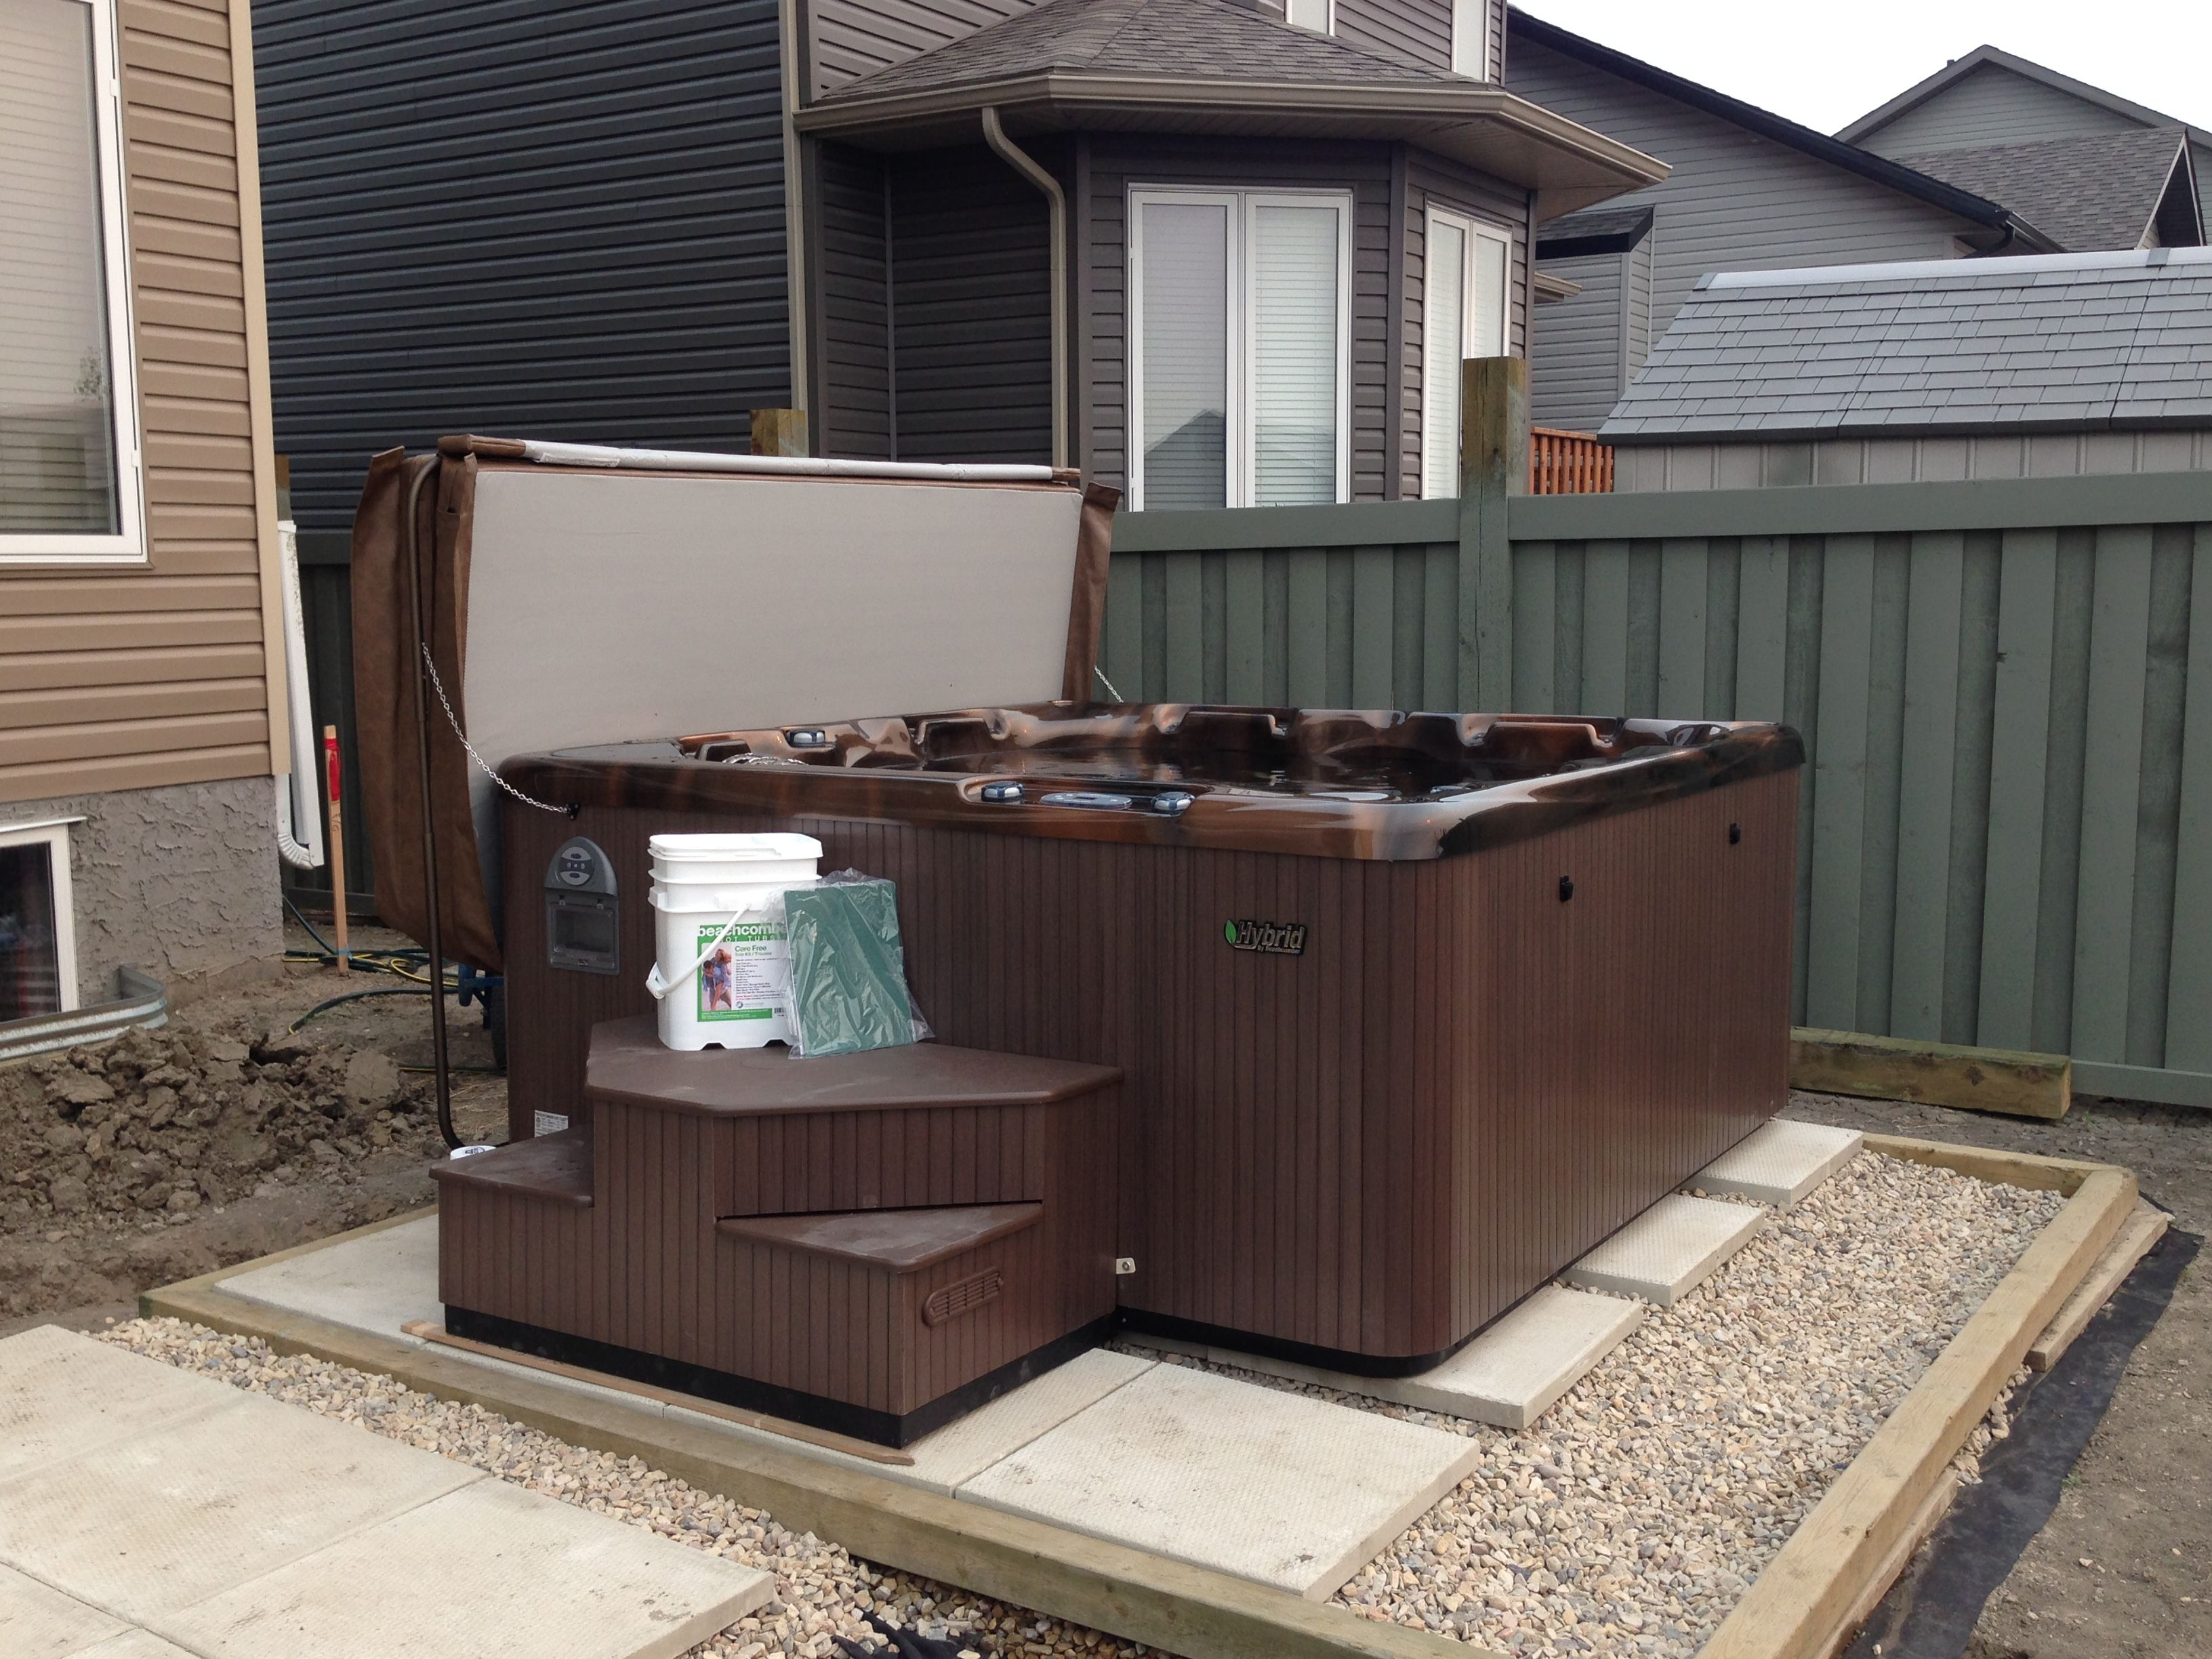 beachcomber model 580 install hot tub patio whistler spas backyard ideas pools [ 3264 x 2448 Pixel ]